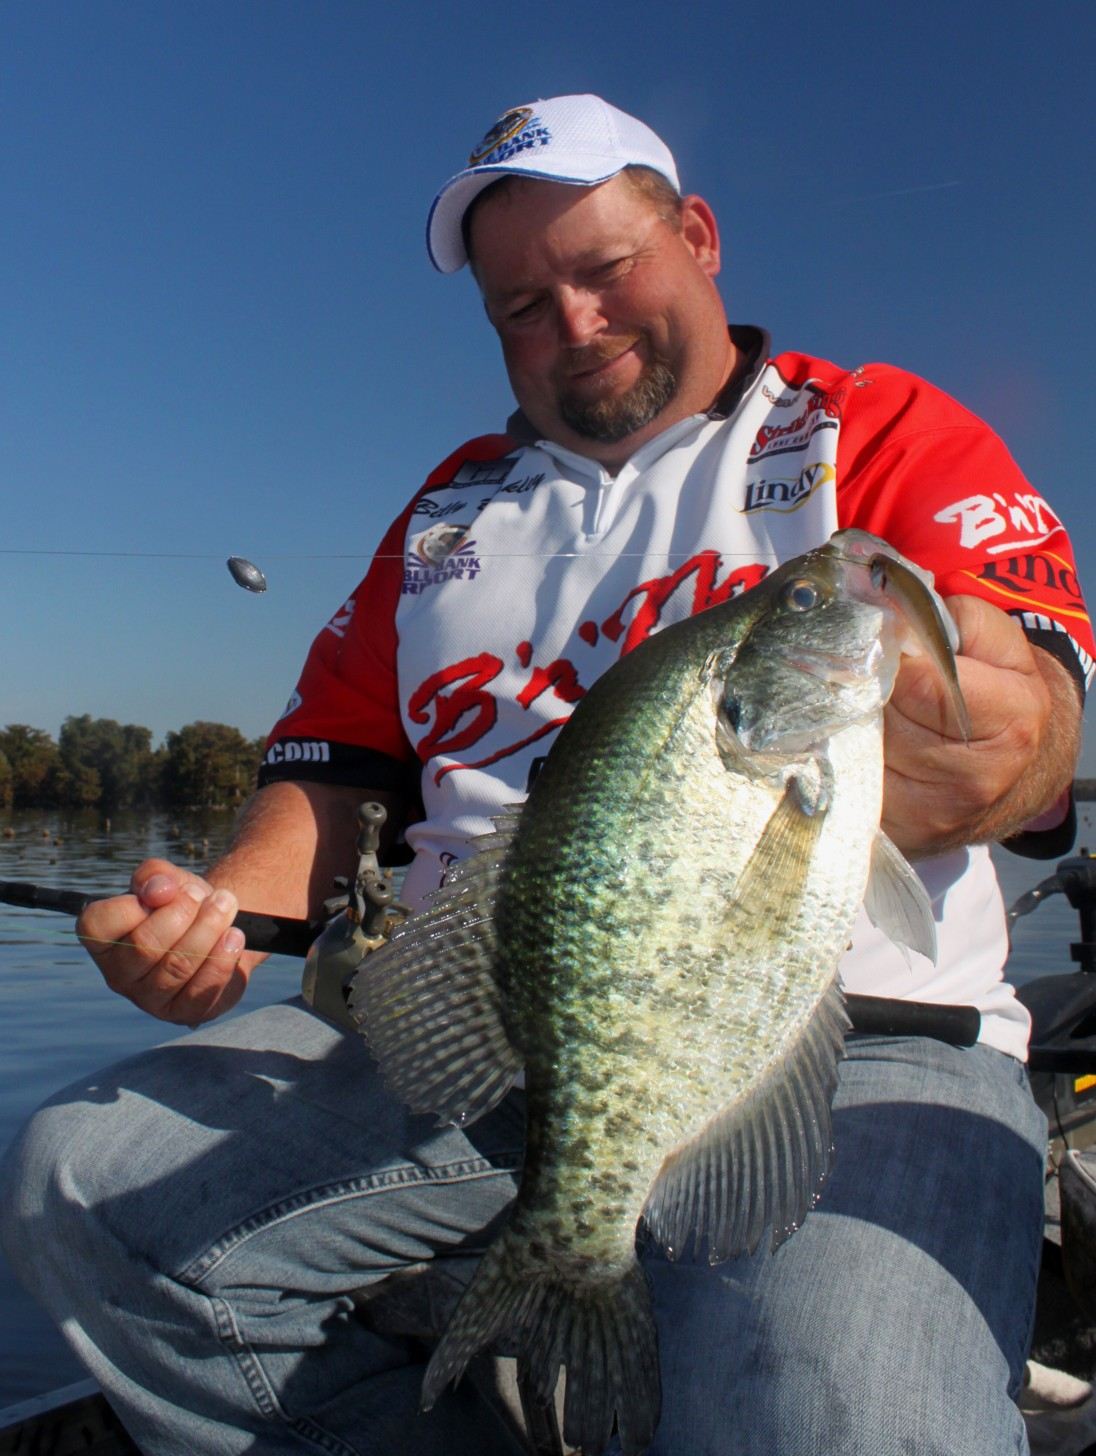 Jeff samsel fishing october 2012 for Reelfoot lake crappie fishing